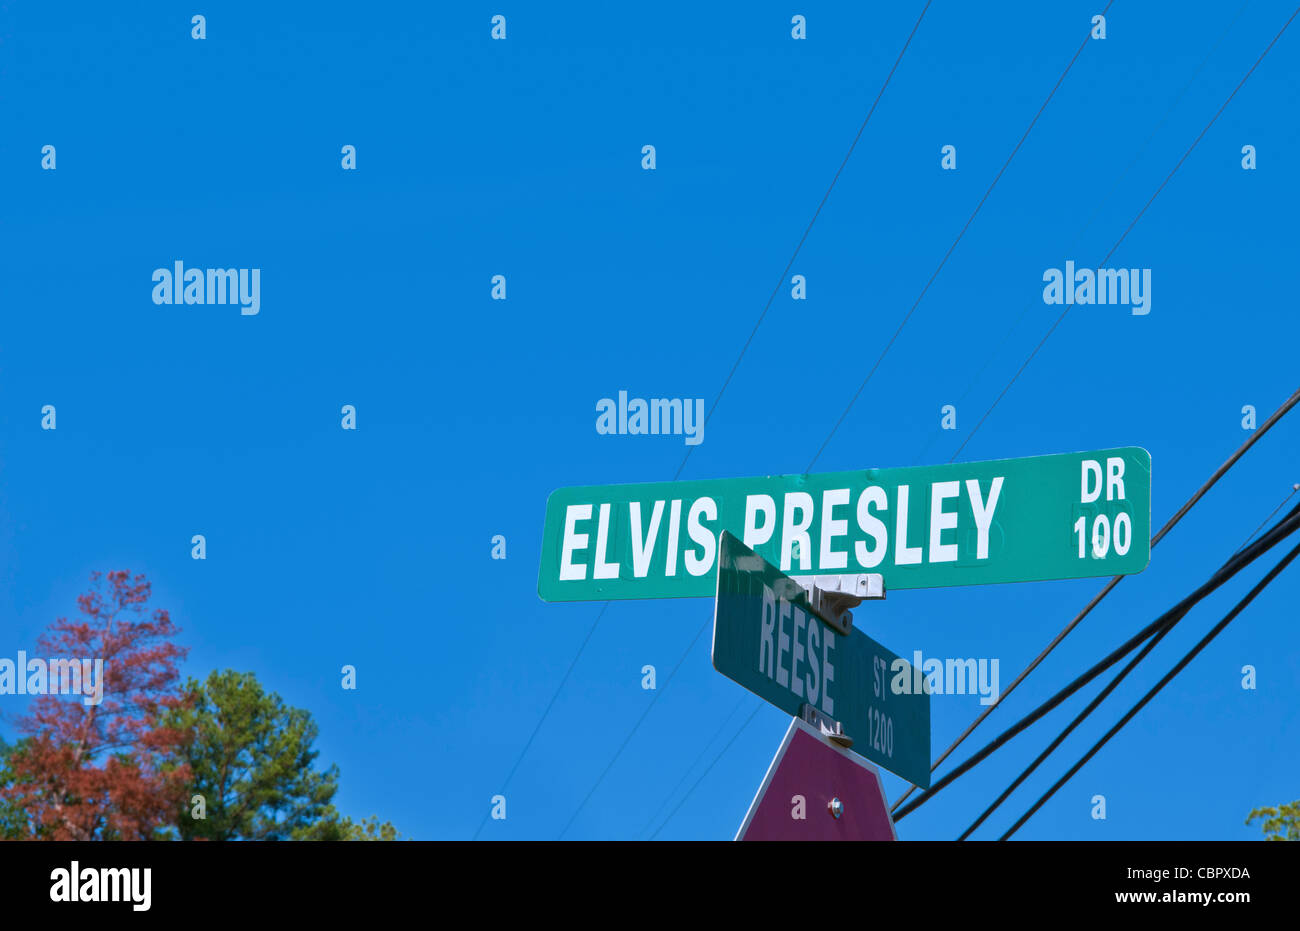 Famous rock king Elvis Presley birthplace in Tupelo Mississippi on Elvis Presley Drive - Stock Image